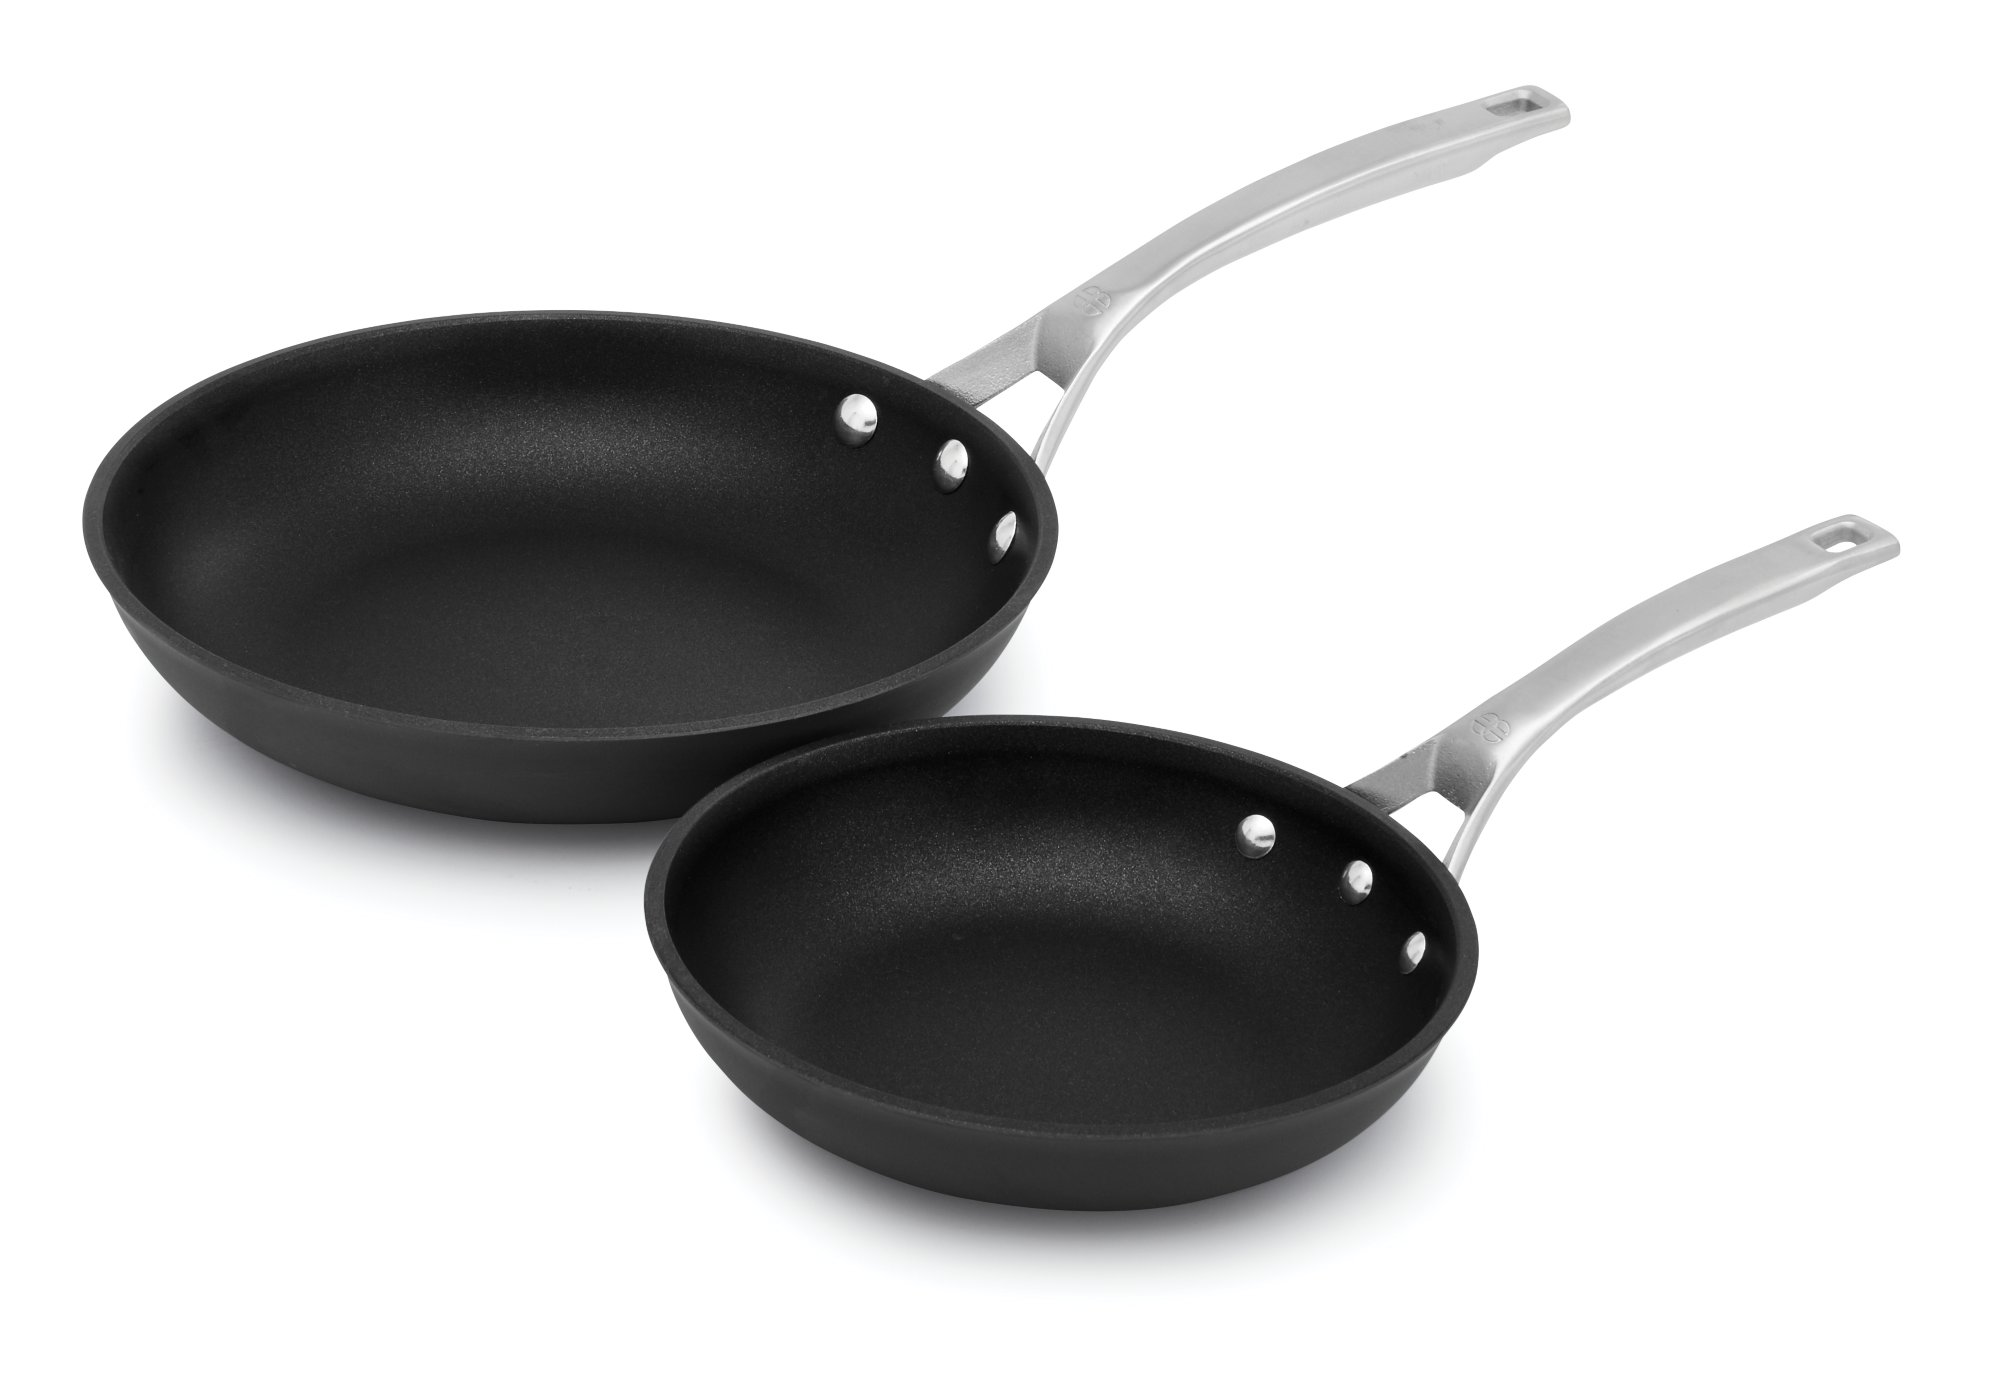 Calphalon Signature™ Nonstick 8-in. and 10-in. Omelette Pan Set